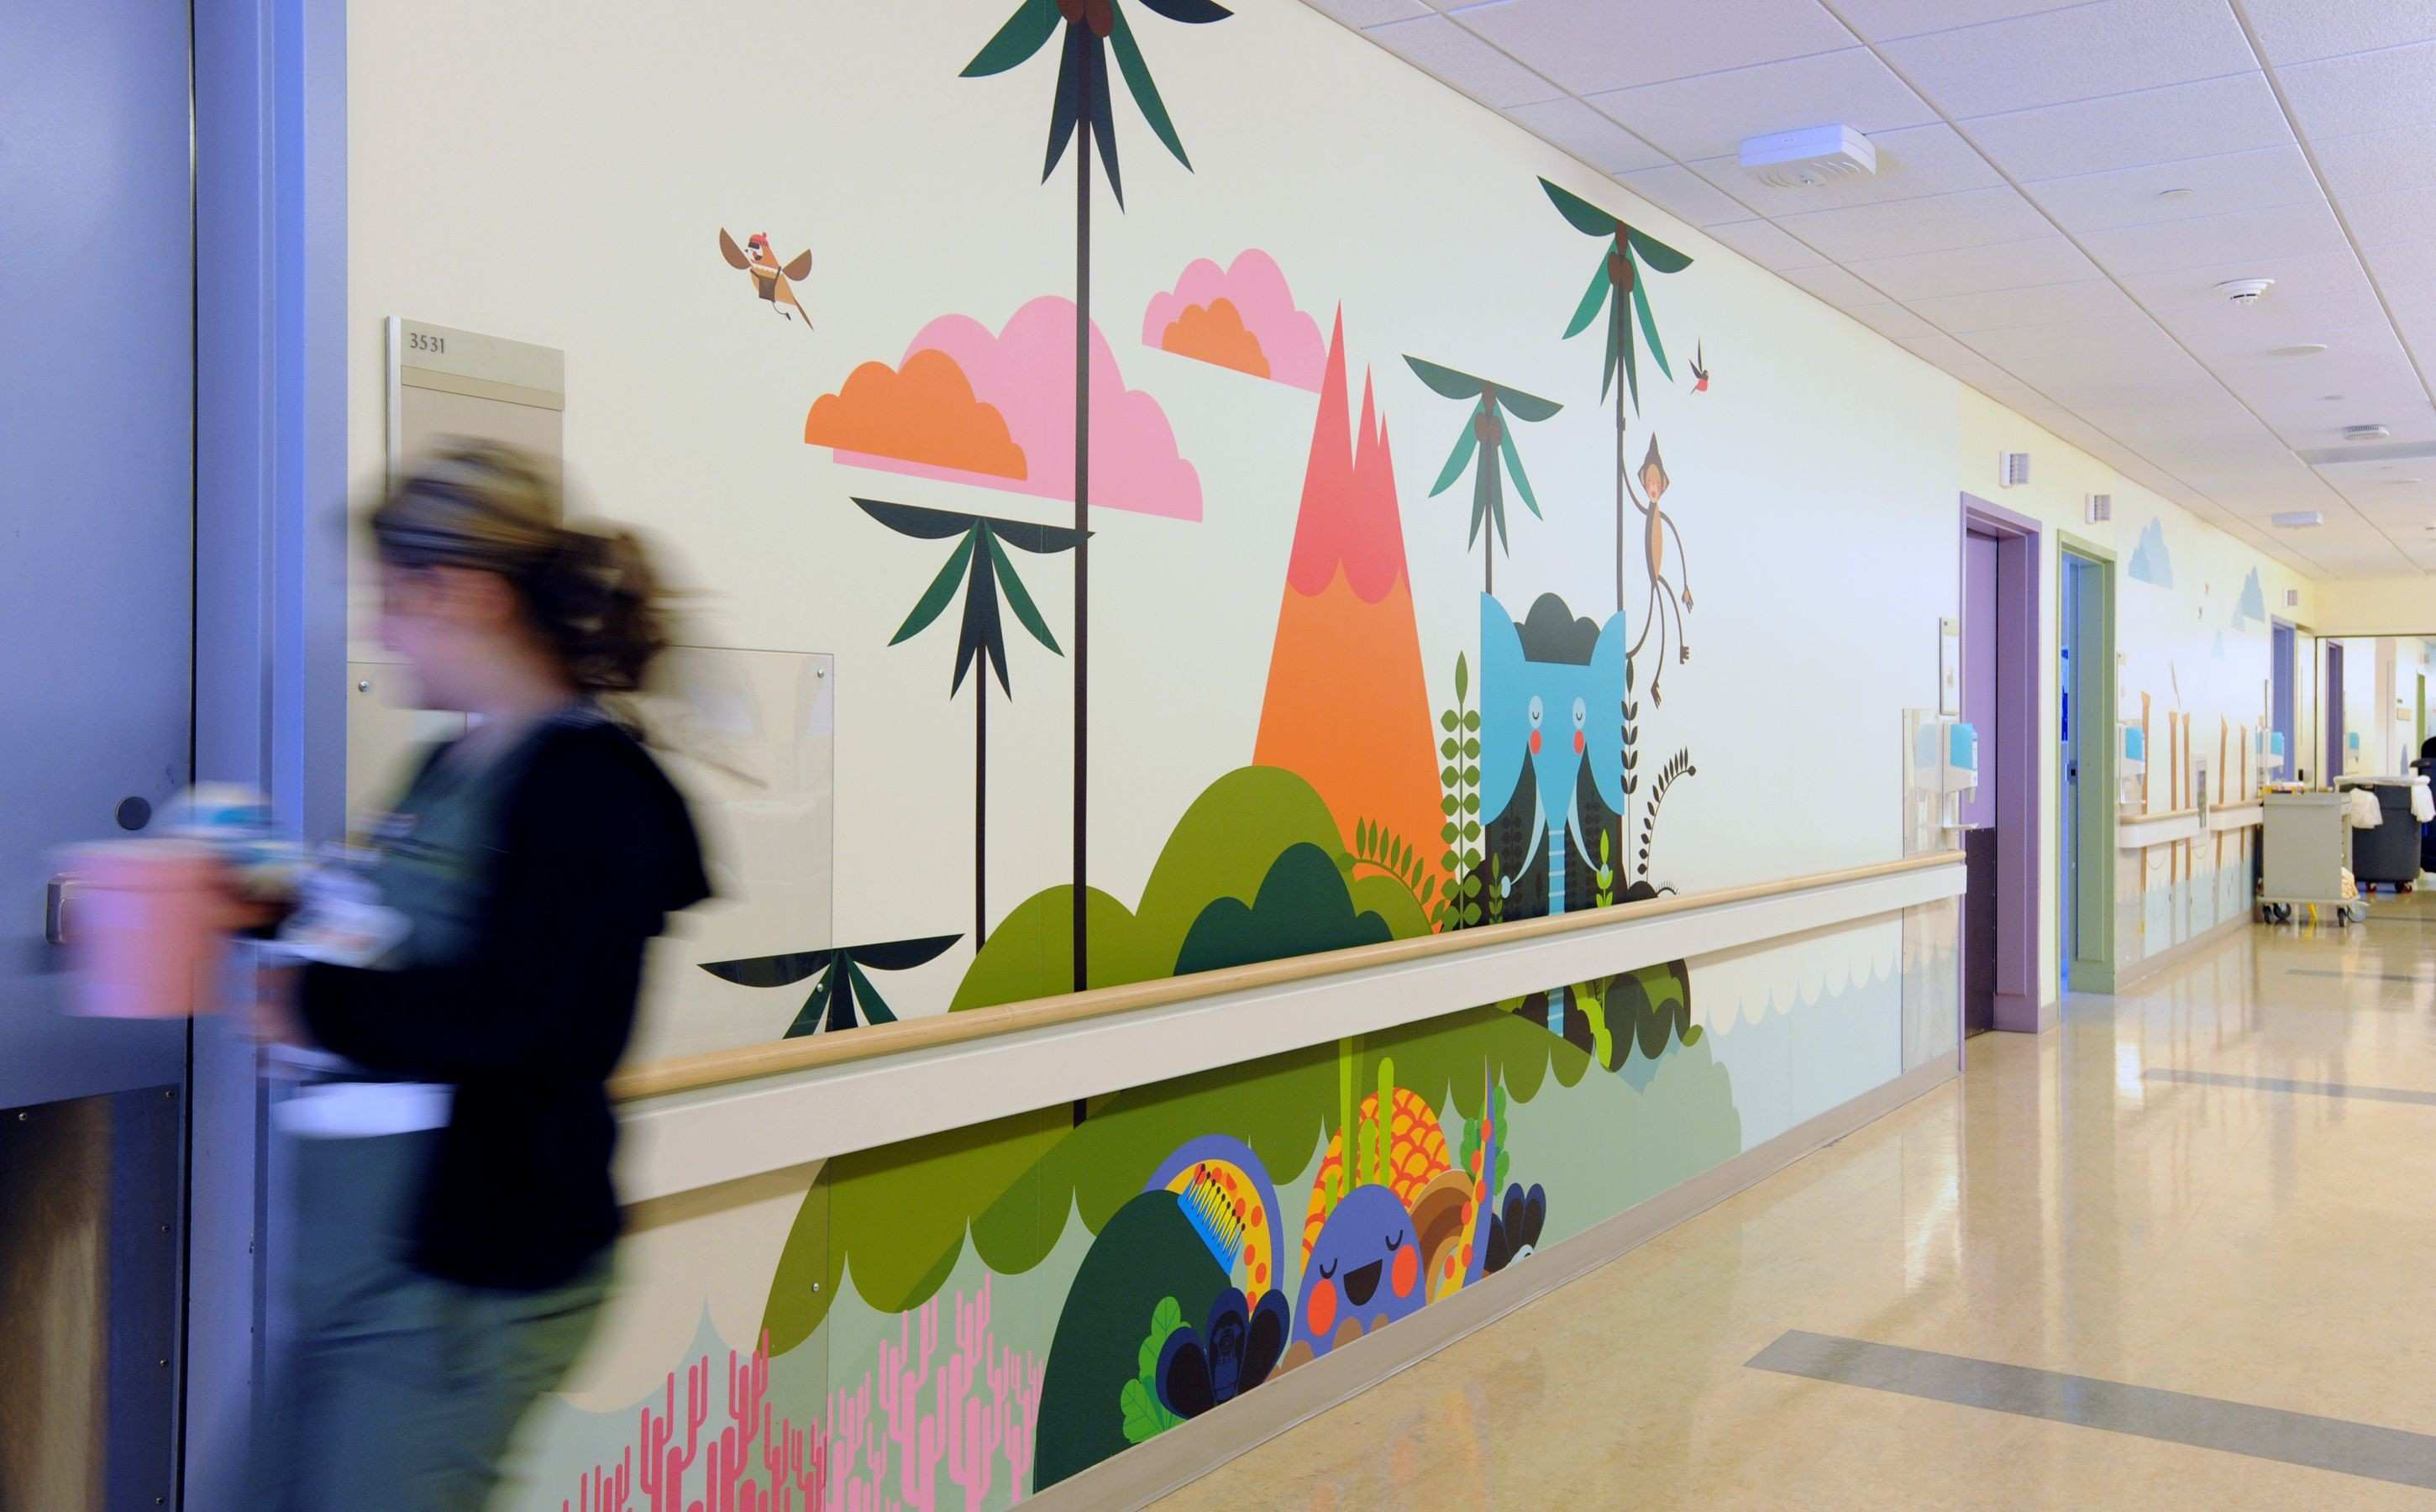 MATTEL CHILDREN S HOSPITAL PHASE 2 Children spaces